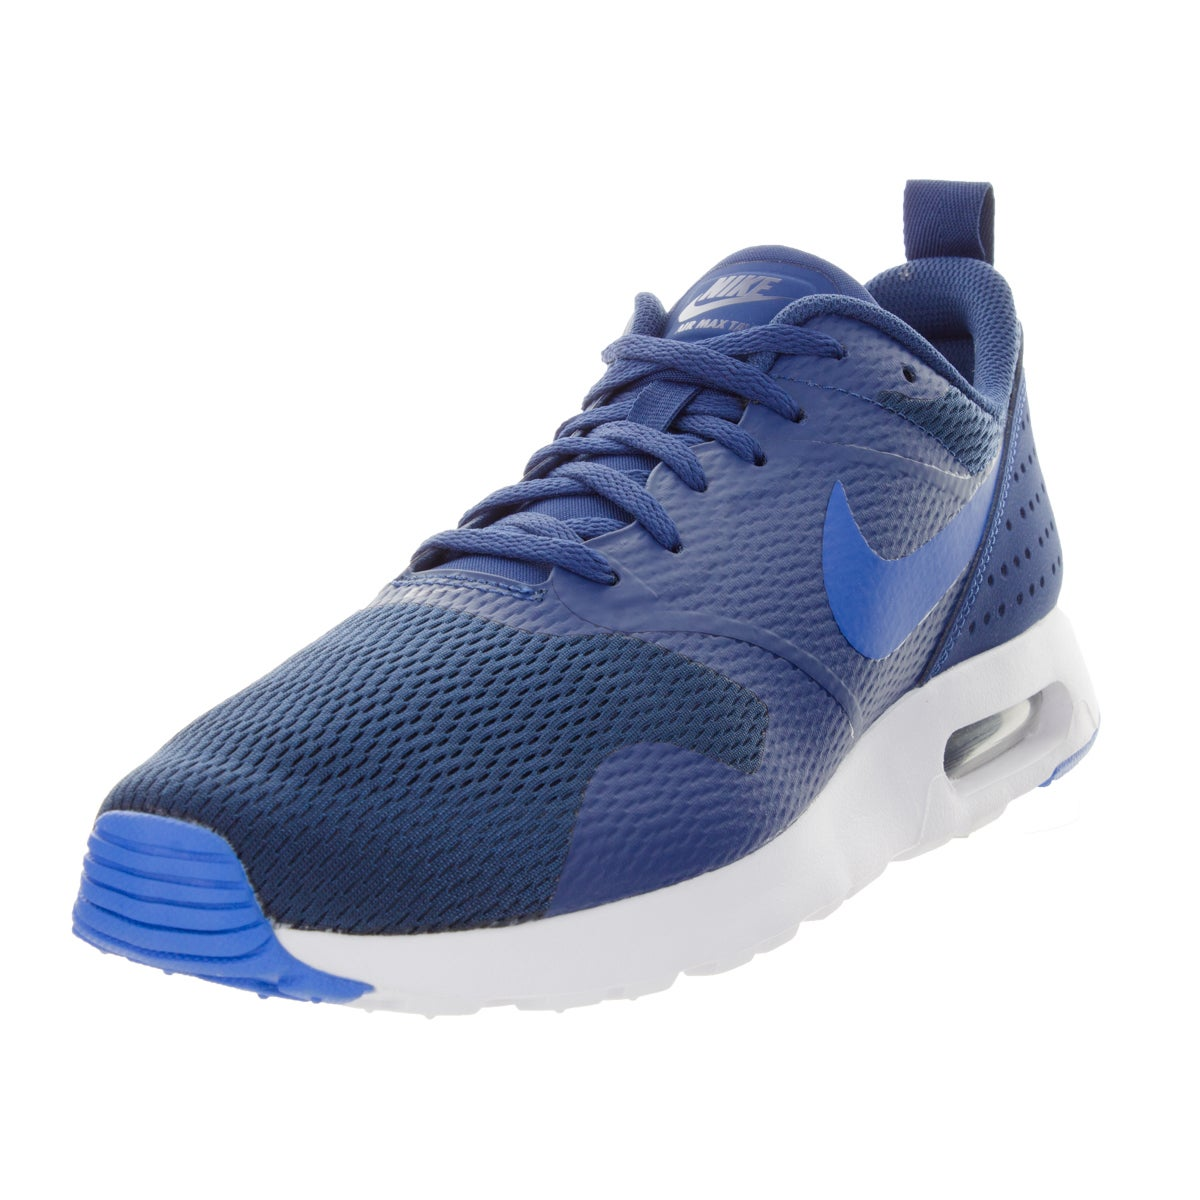 low priced 00a8a ea6db Shop Nike Men s Air Max Tavas Cs Blue Bl Sprk White  Running Shoe - Free  Shipping Today - Overstock - 12329281